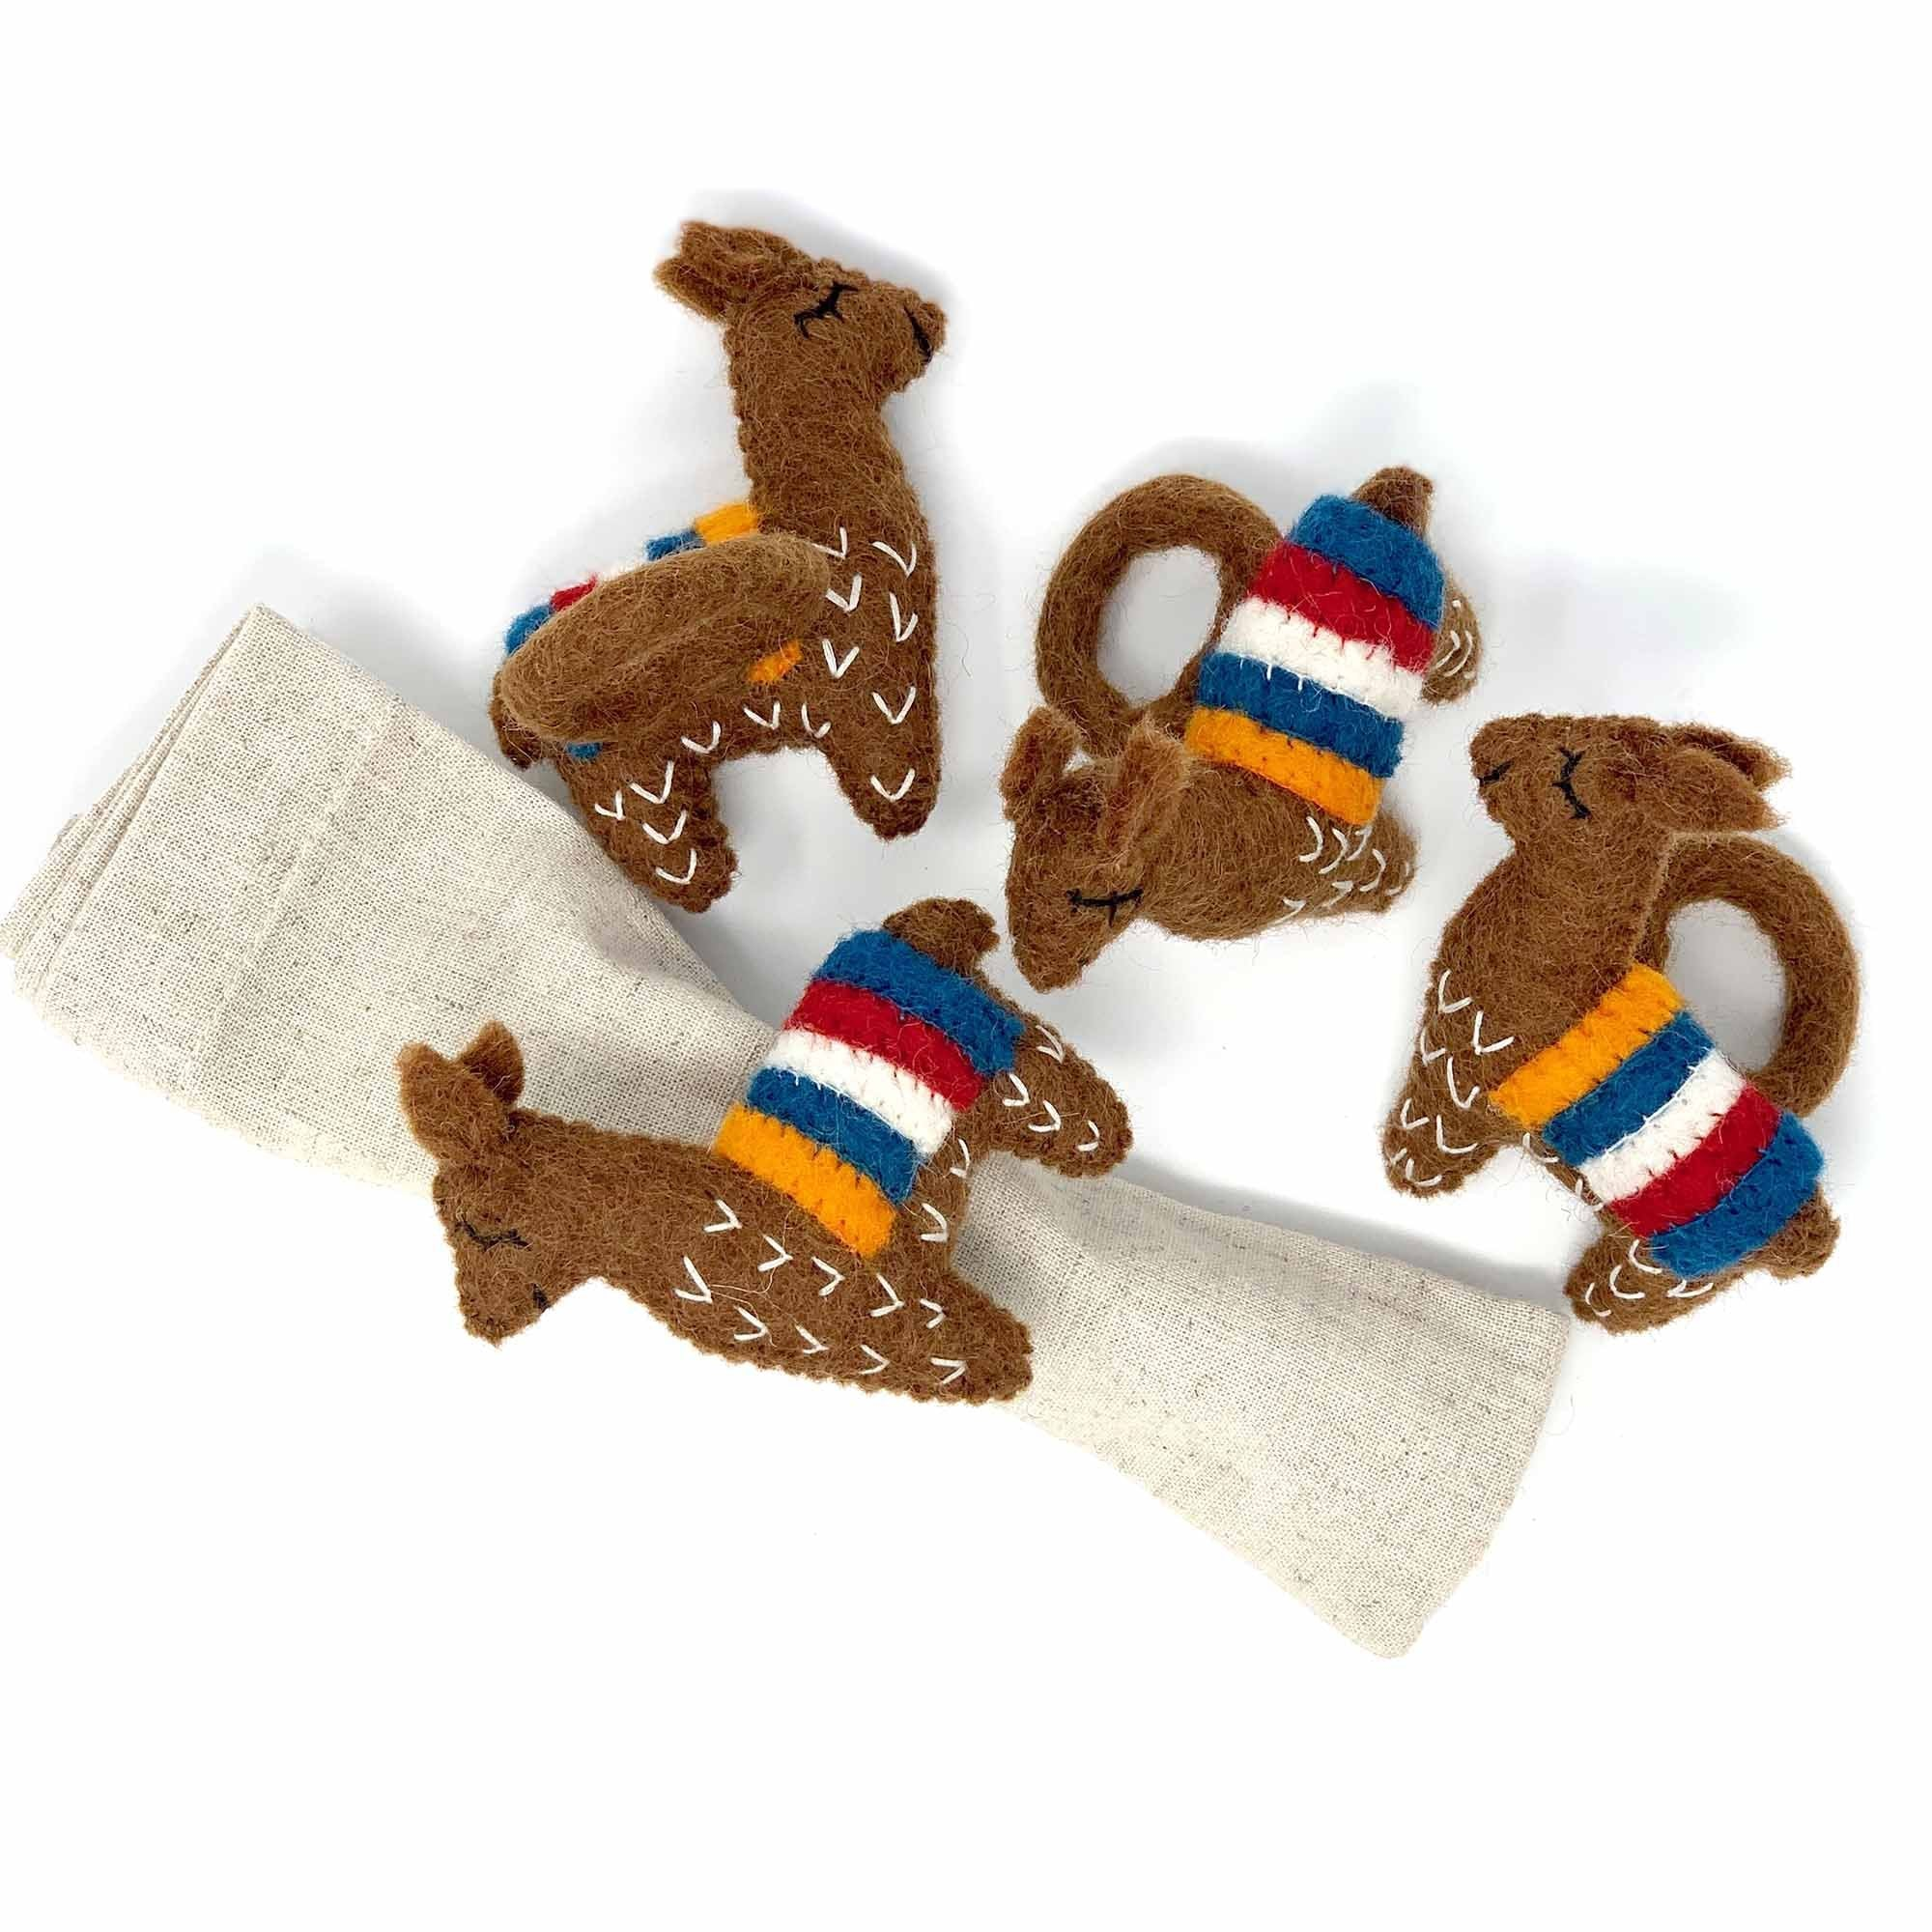 Set of 4 Llama Napkin Rings - Chocolate